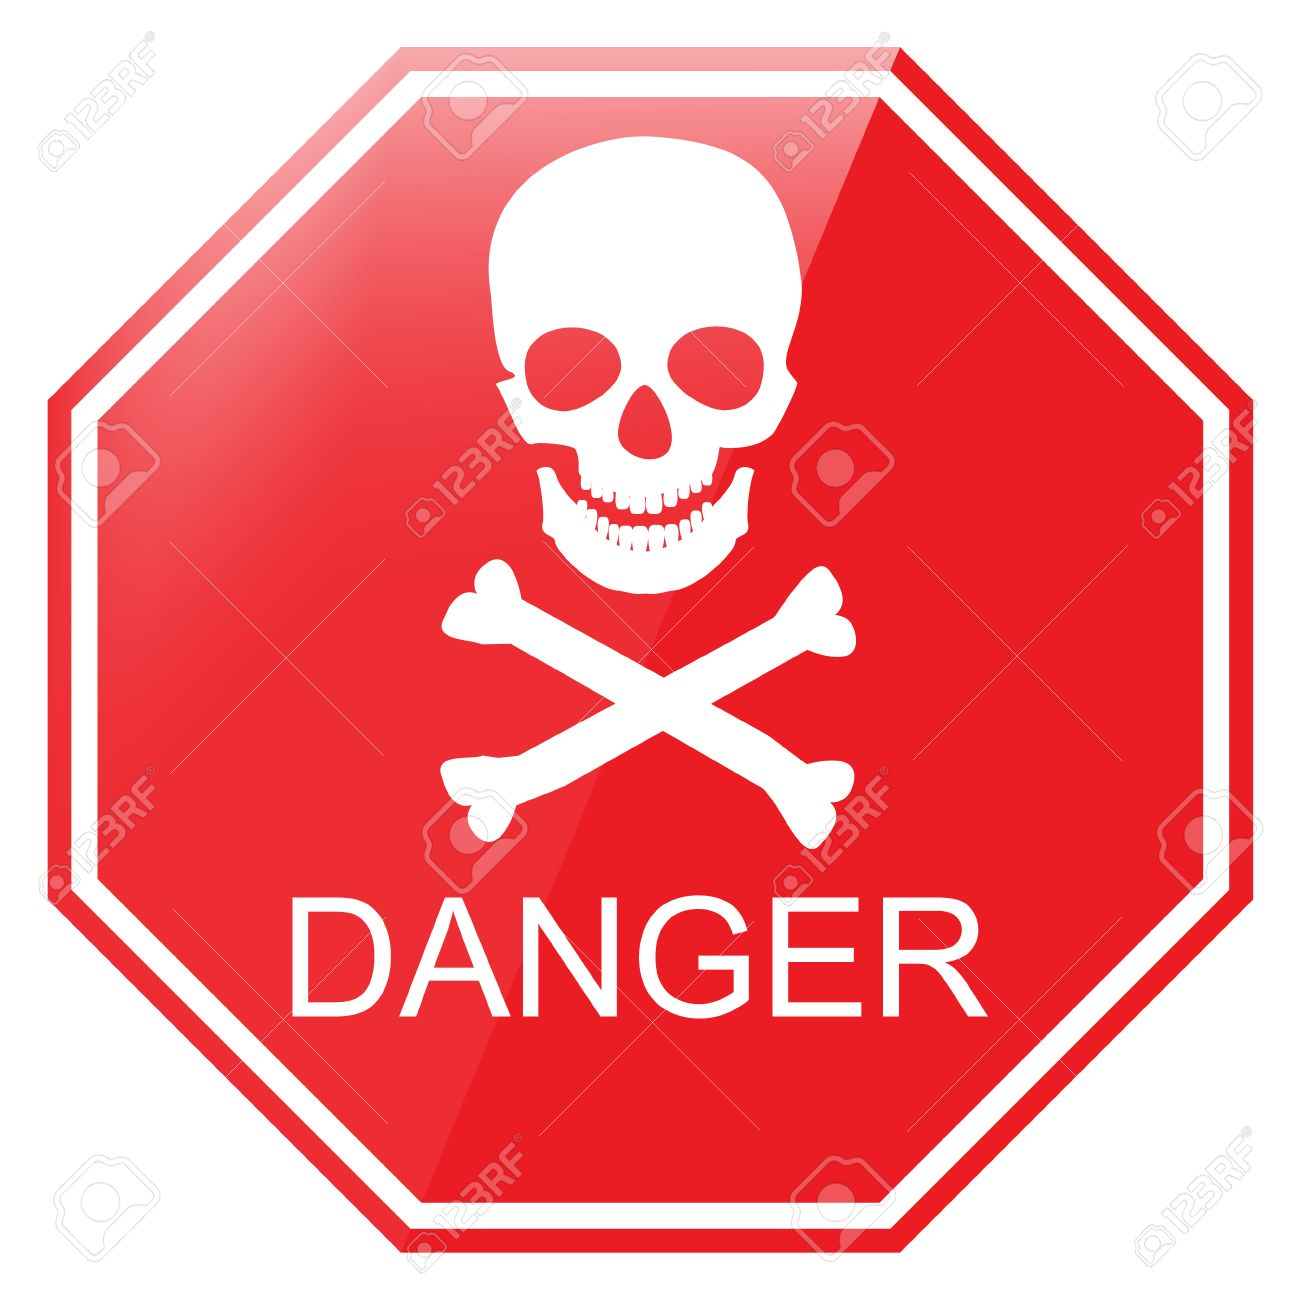 vector illustration red octagon danger sign with skull symbol